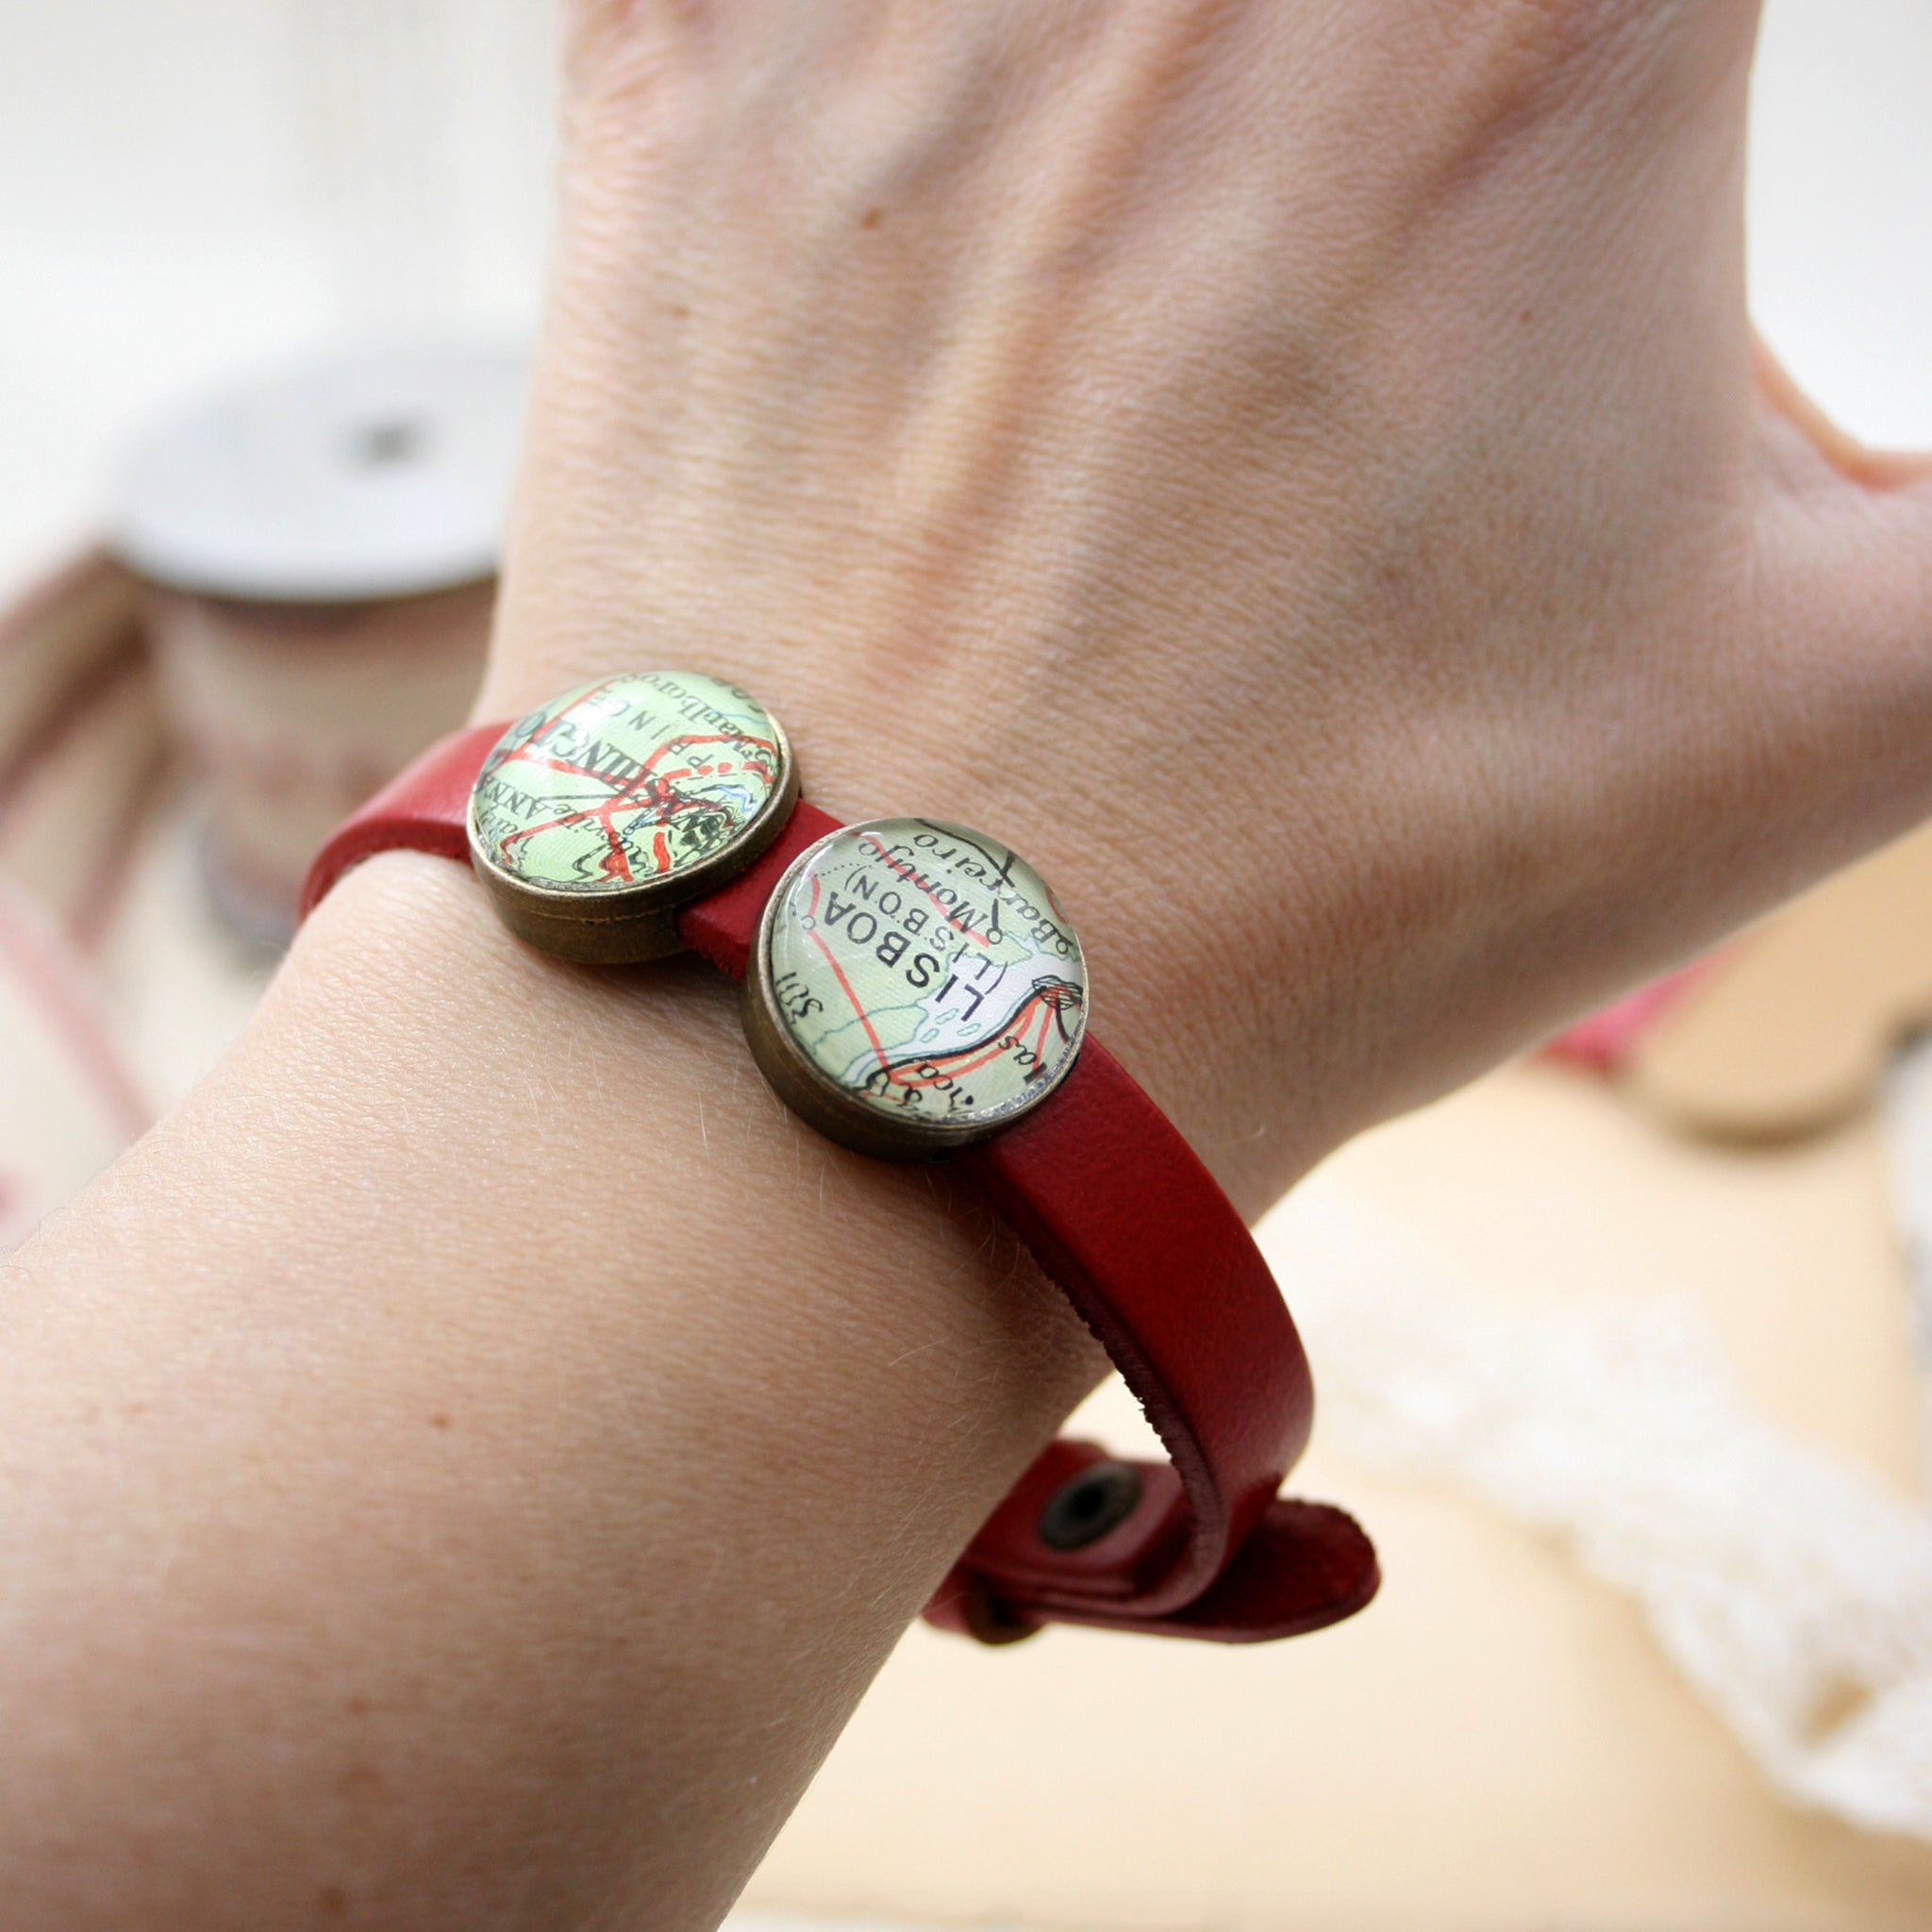 Worn on hand red leather bracelet featuring map locations